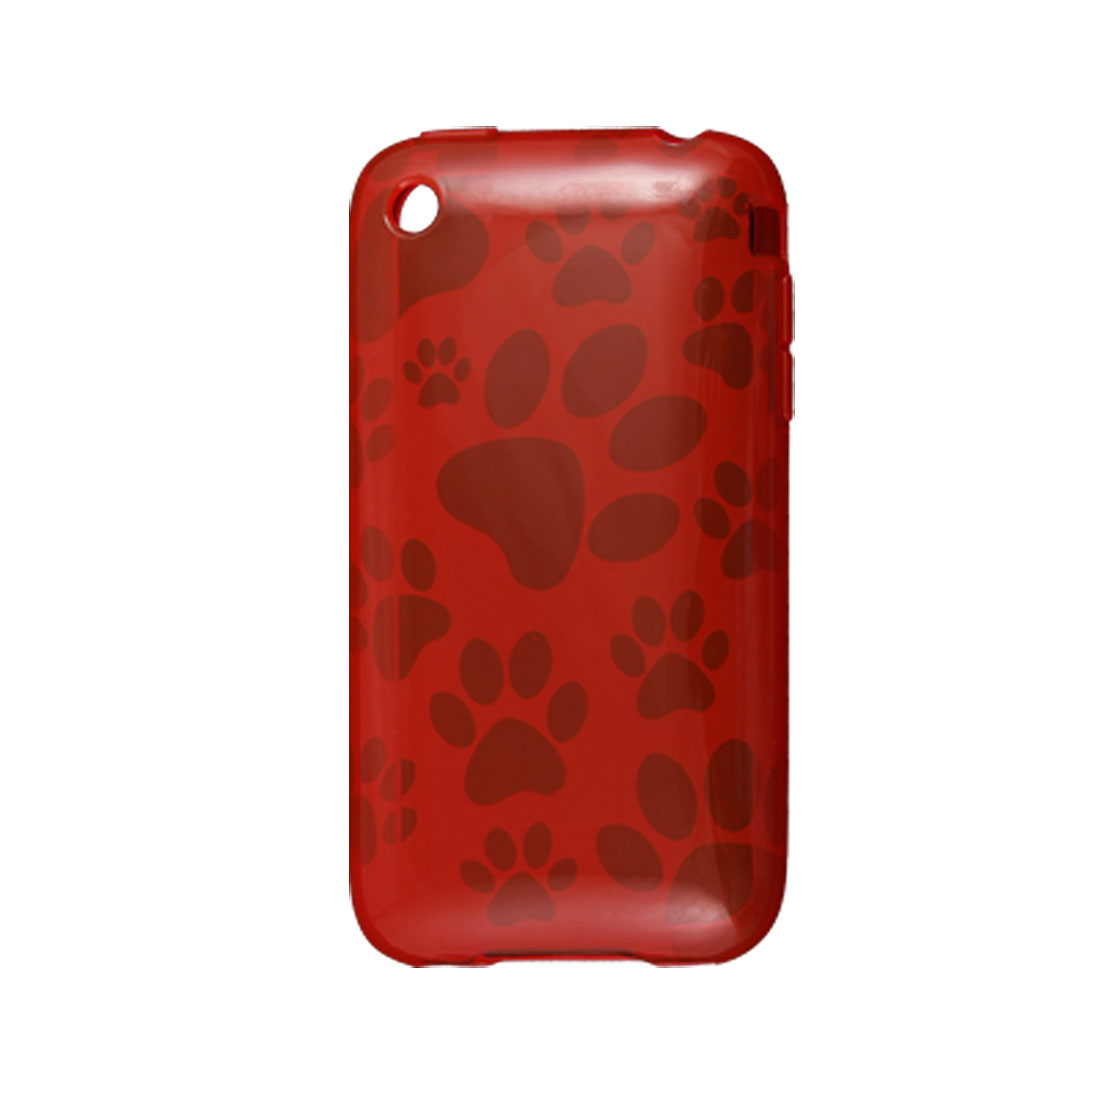 Dog Footprint Soft Plastic Case Red Shell for Apple iPhone 3G